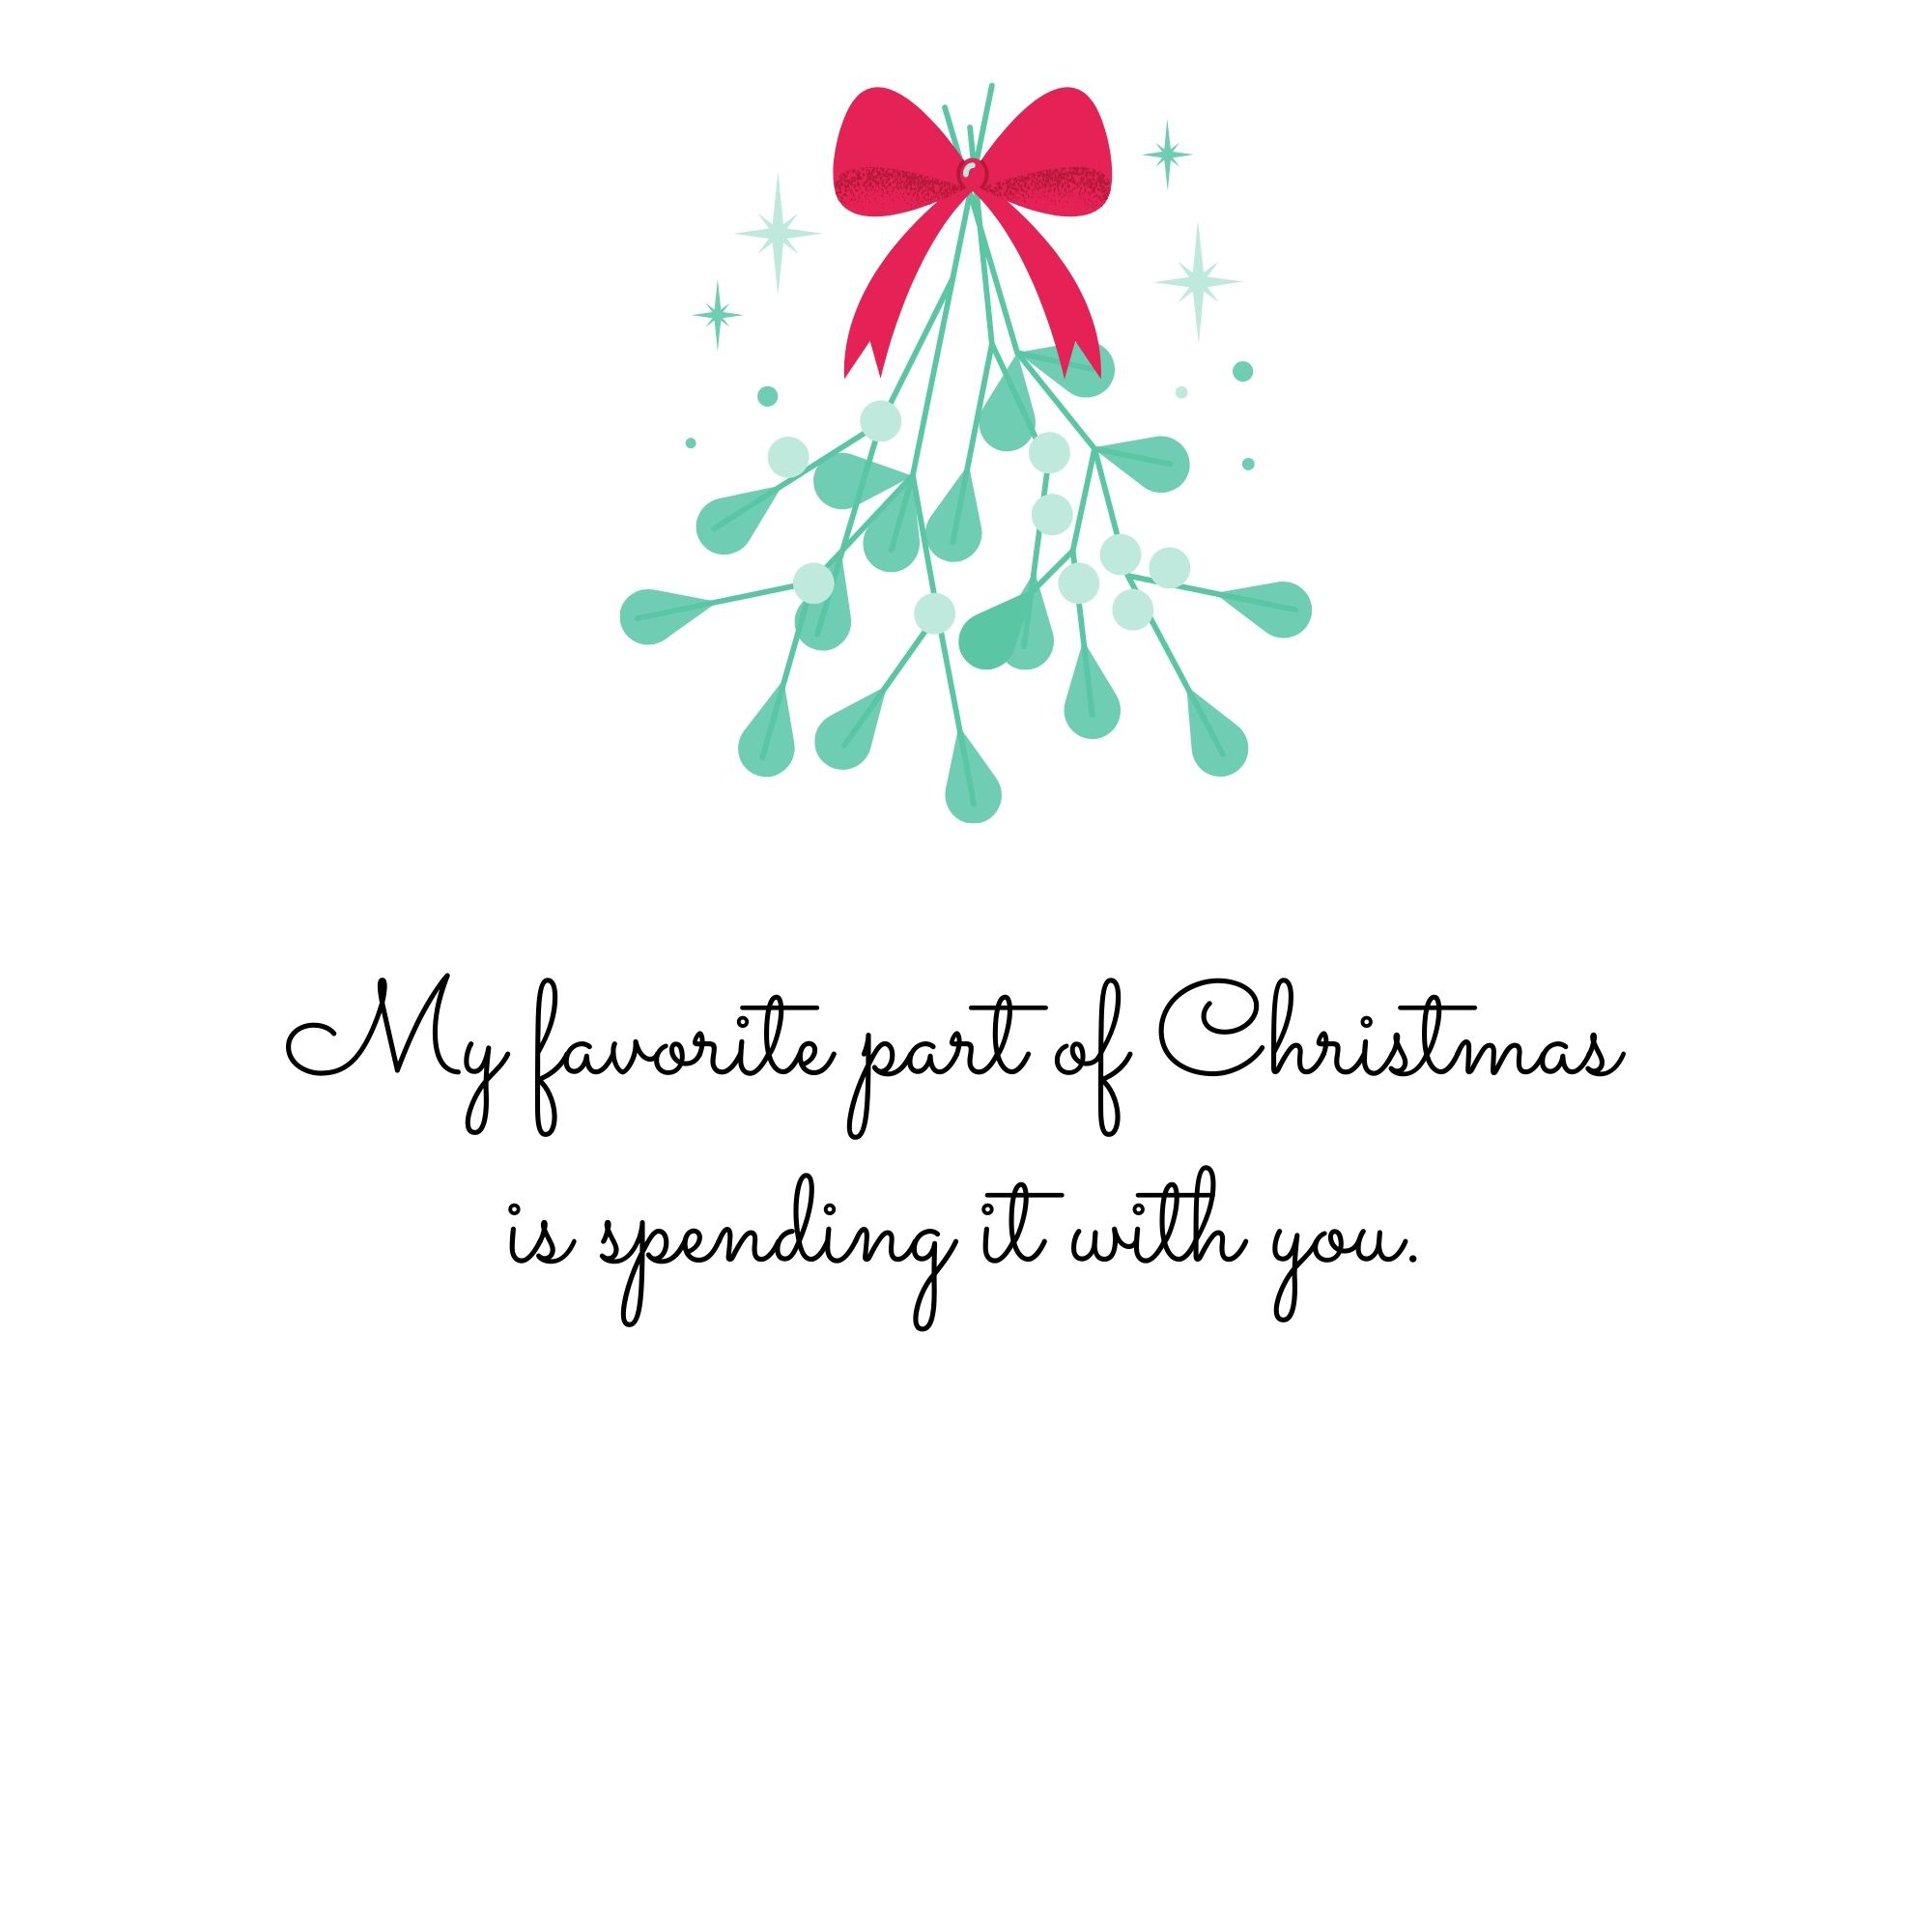 My favorite part of Christmas is spending it with you.